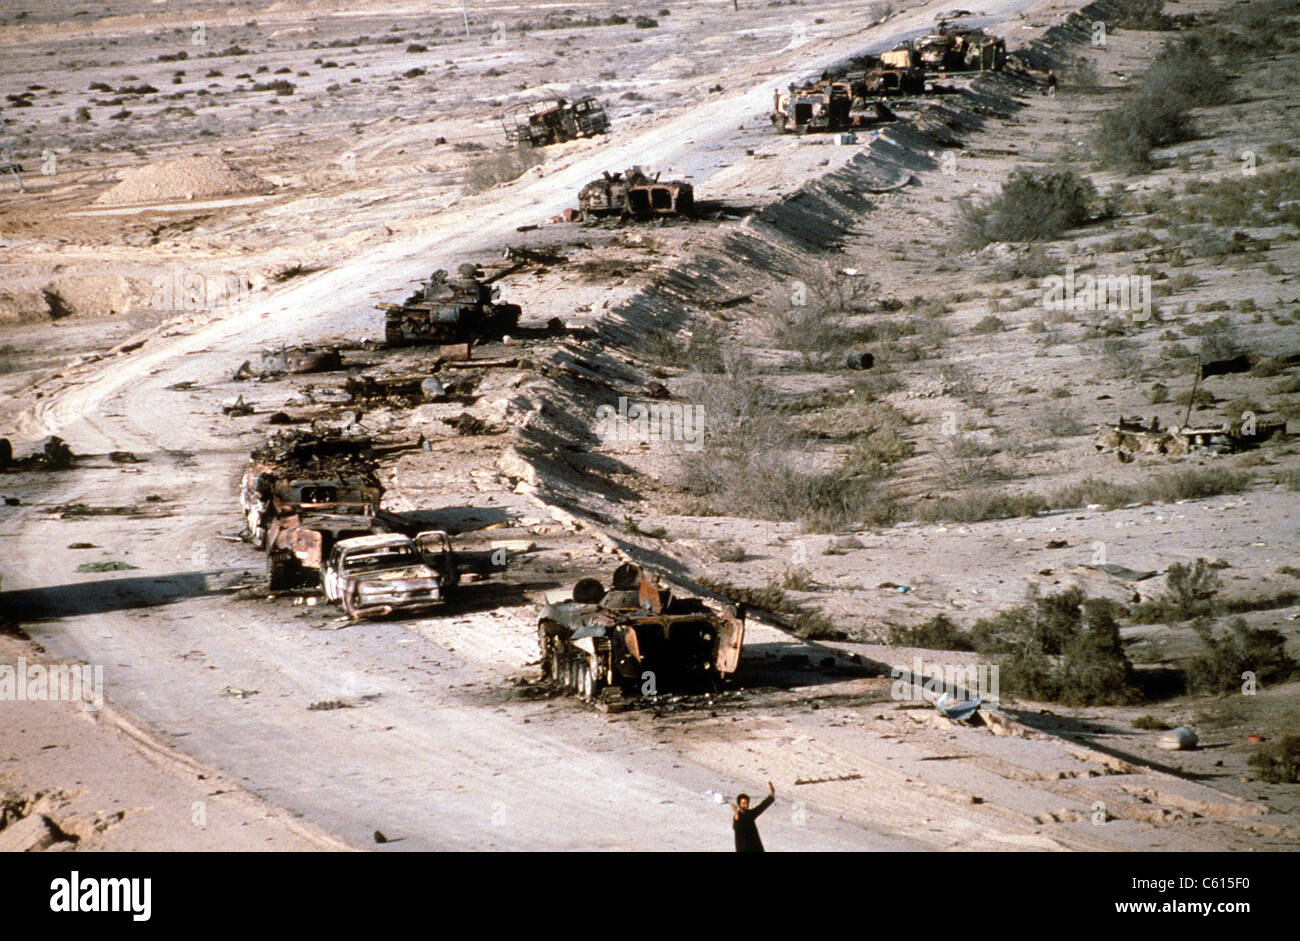 An Iraqi armored column destroyed in the Euphrates River Valley during Operation Desert Storm. Mar. 4 1991. (BSLOC - Stock Image